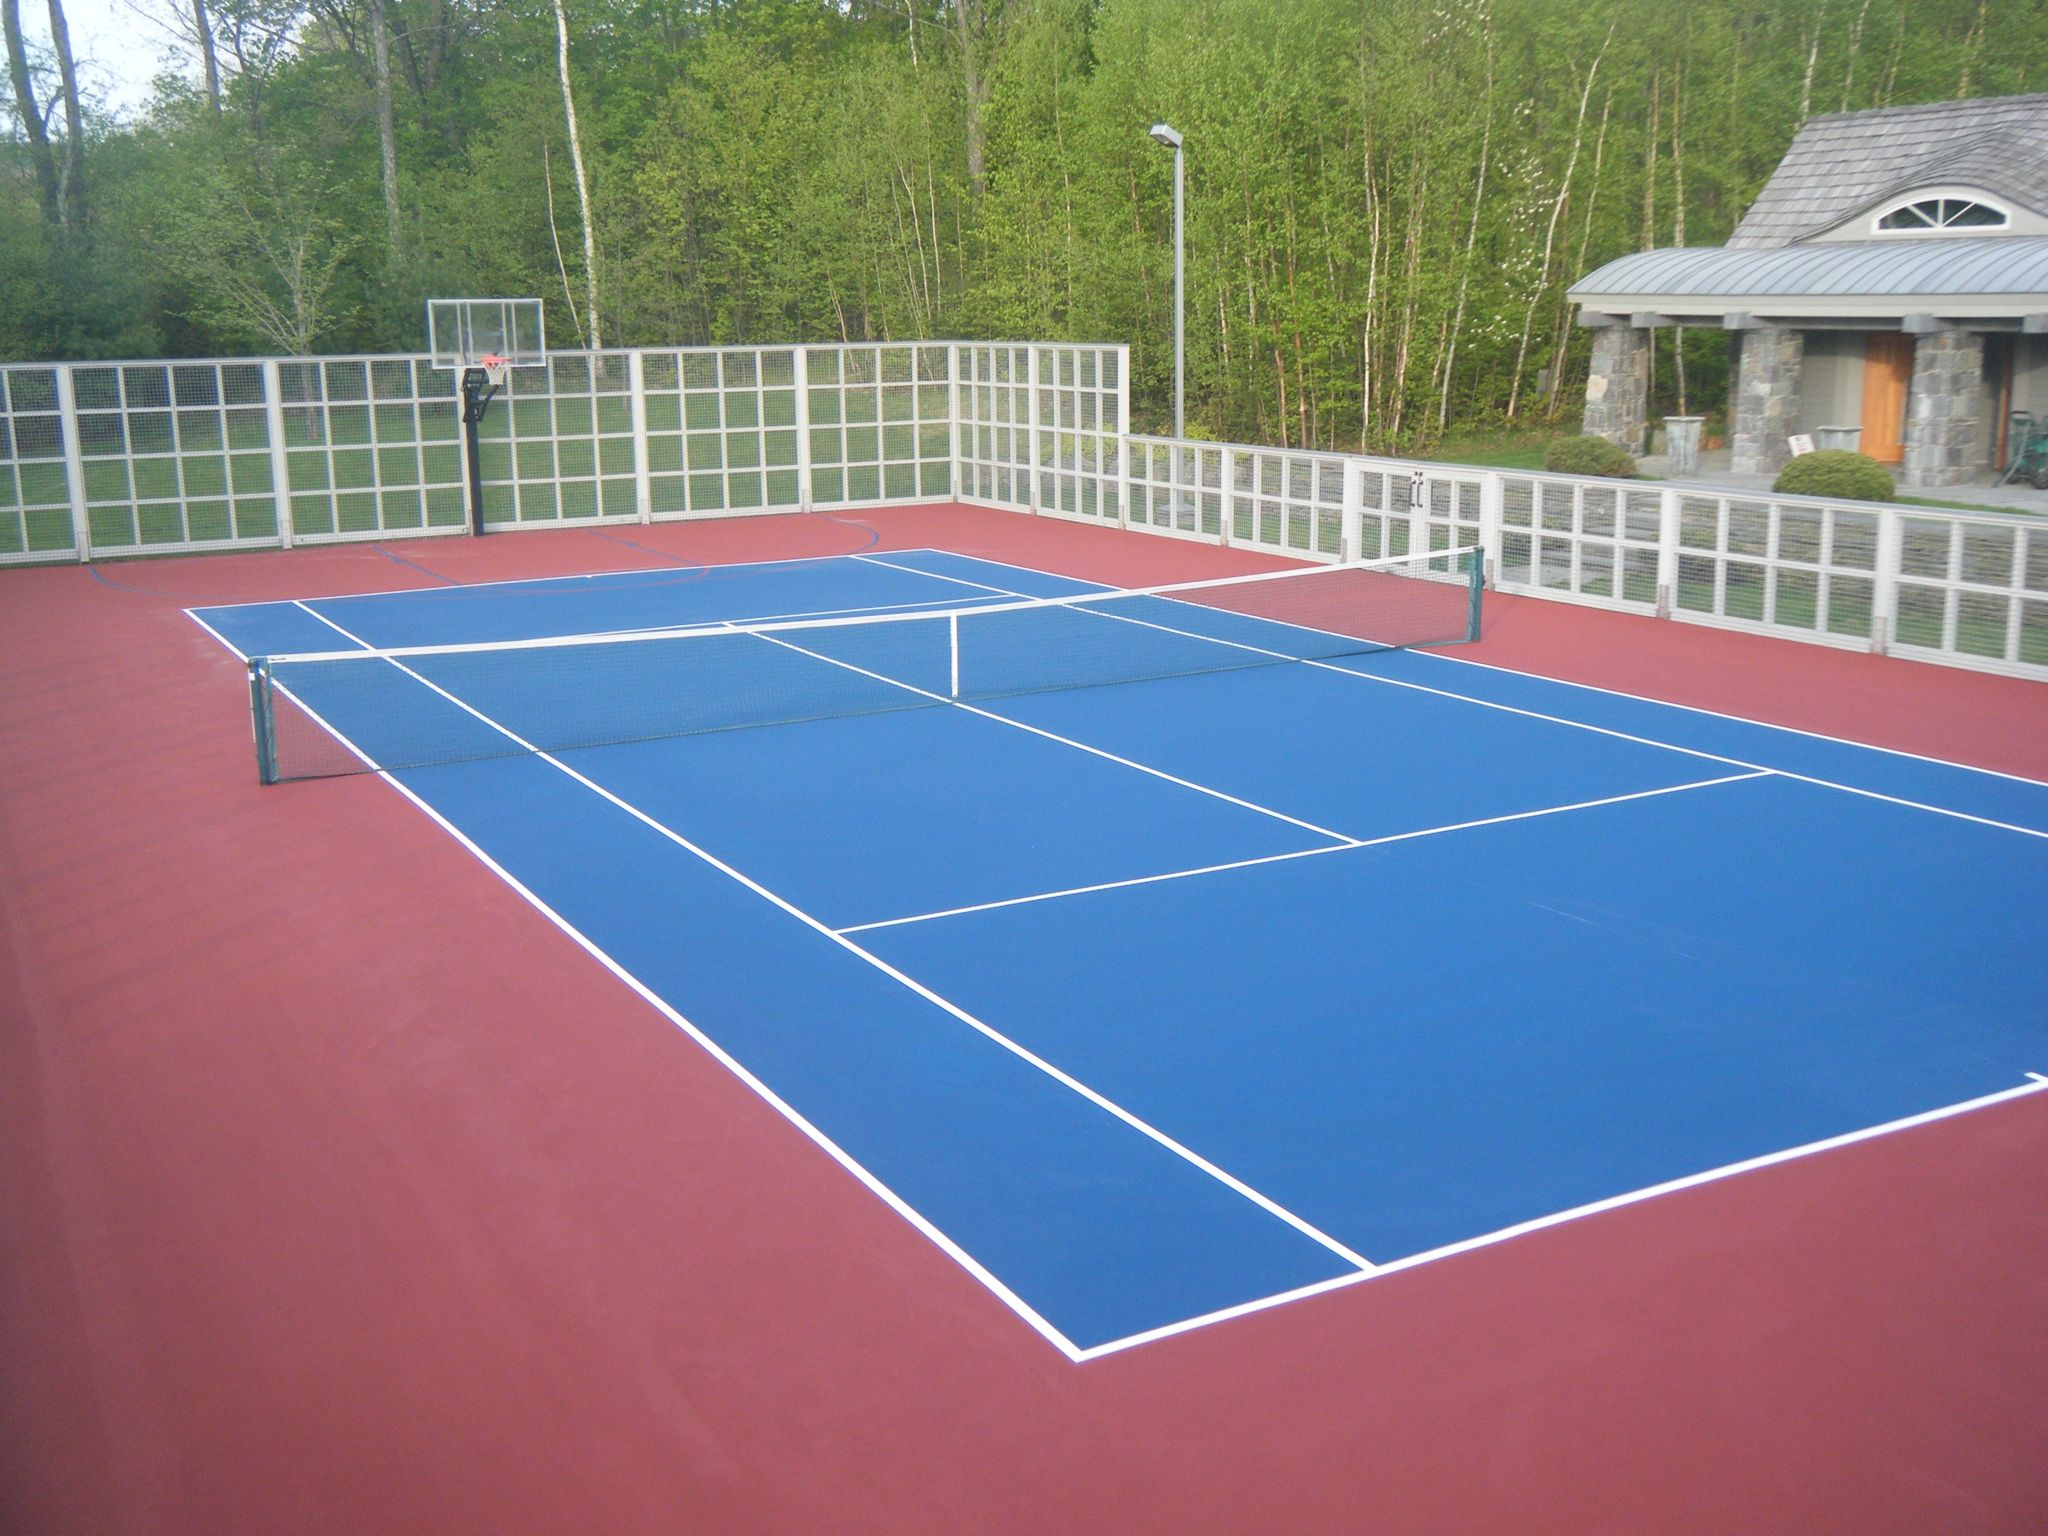 Superieur Image Result For Tennis Court Backyard